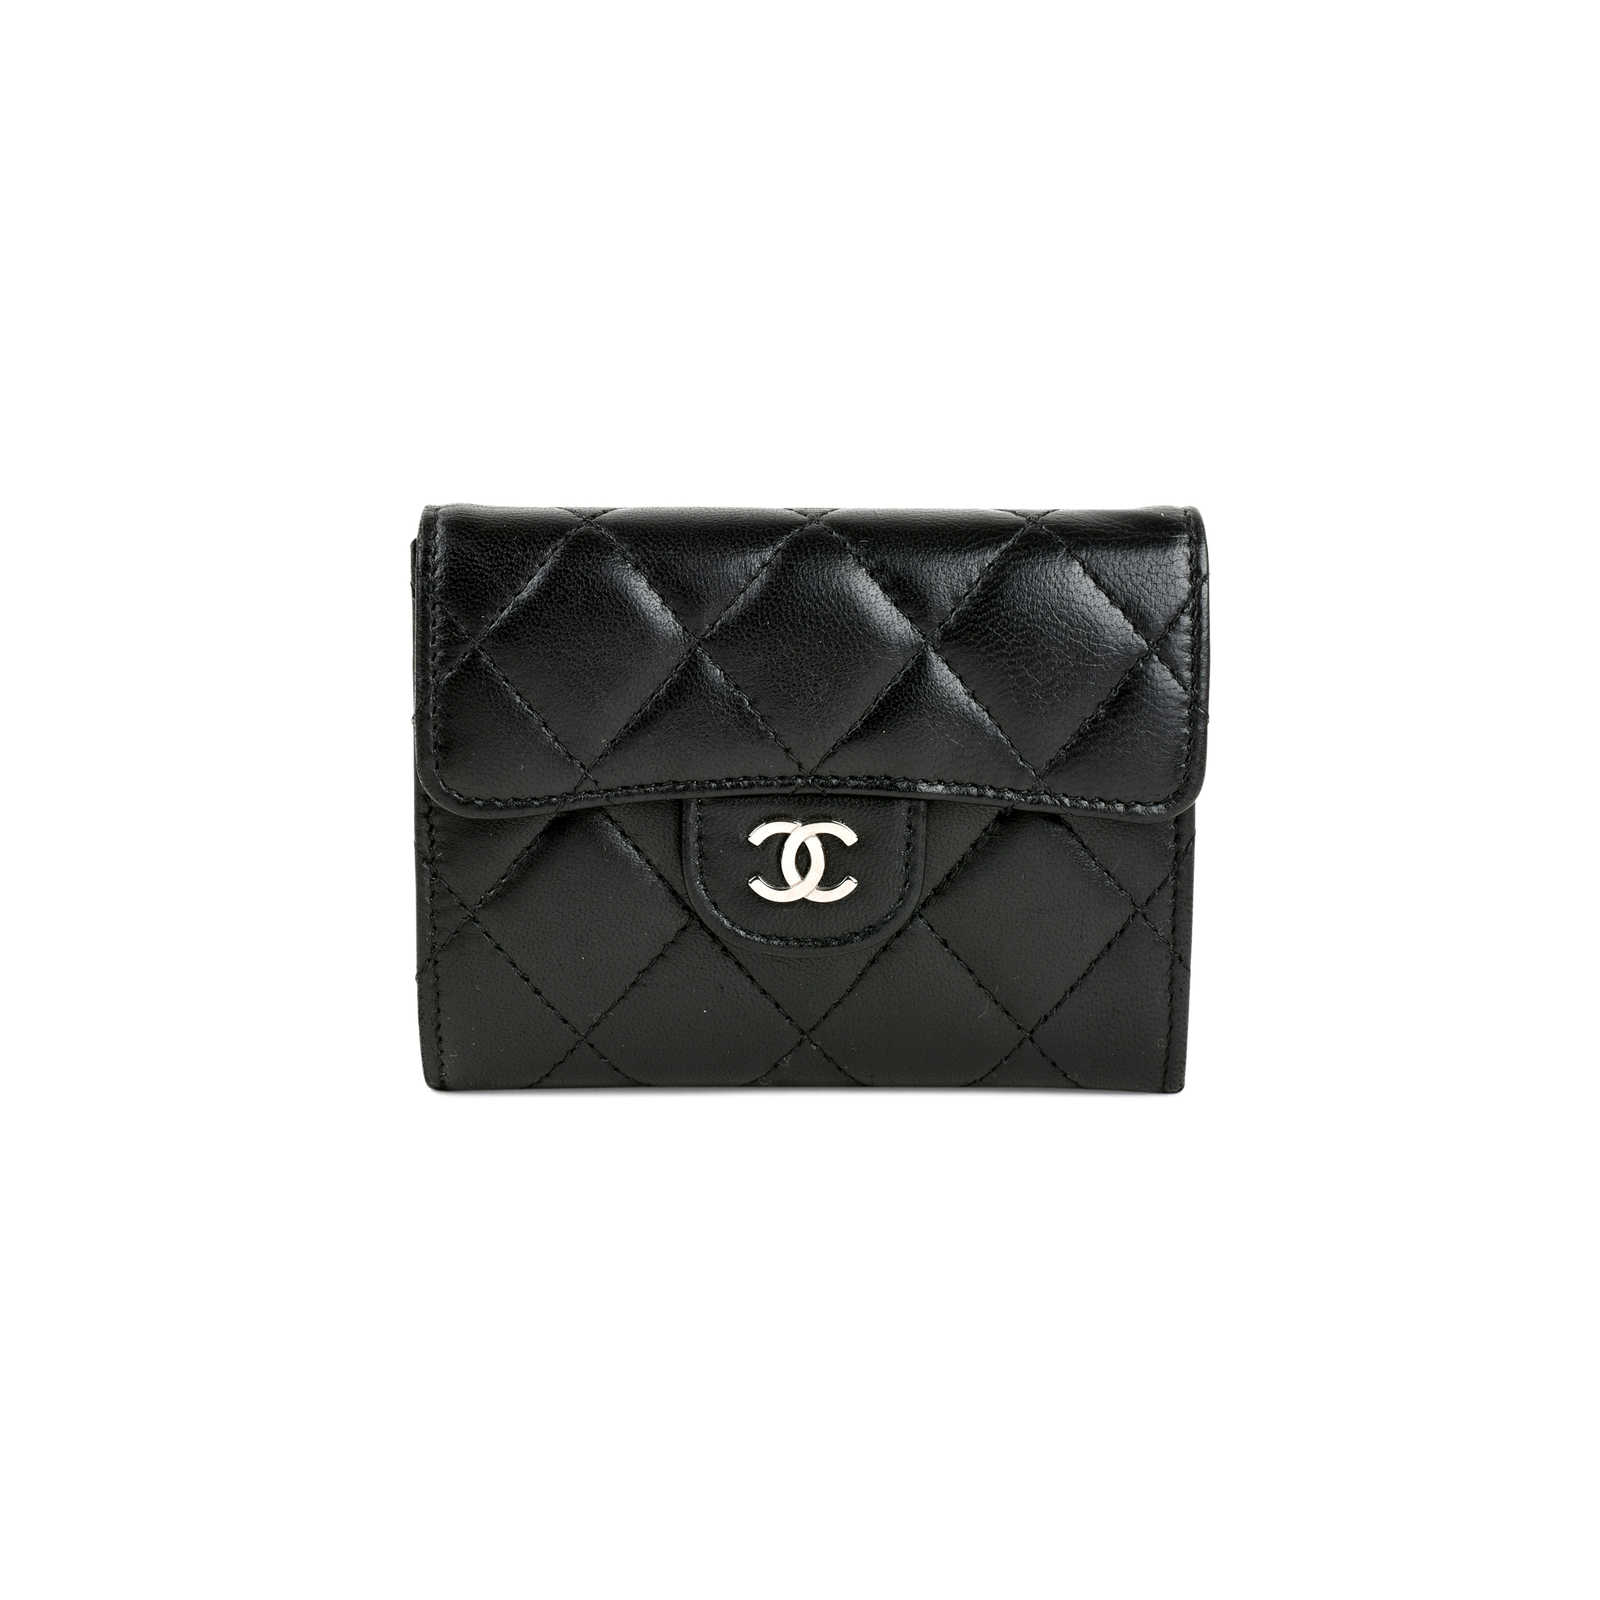 Authentic Second Hand Chanel Classic Coin Purse Pss 240